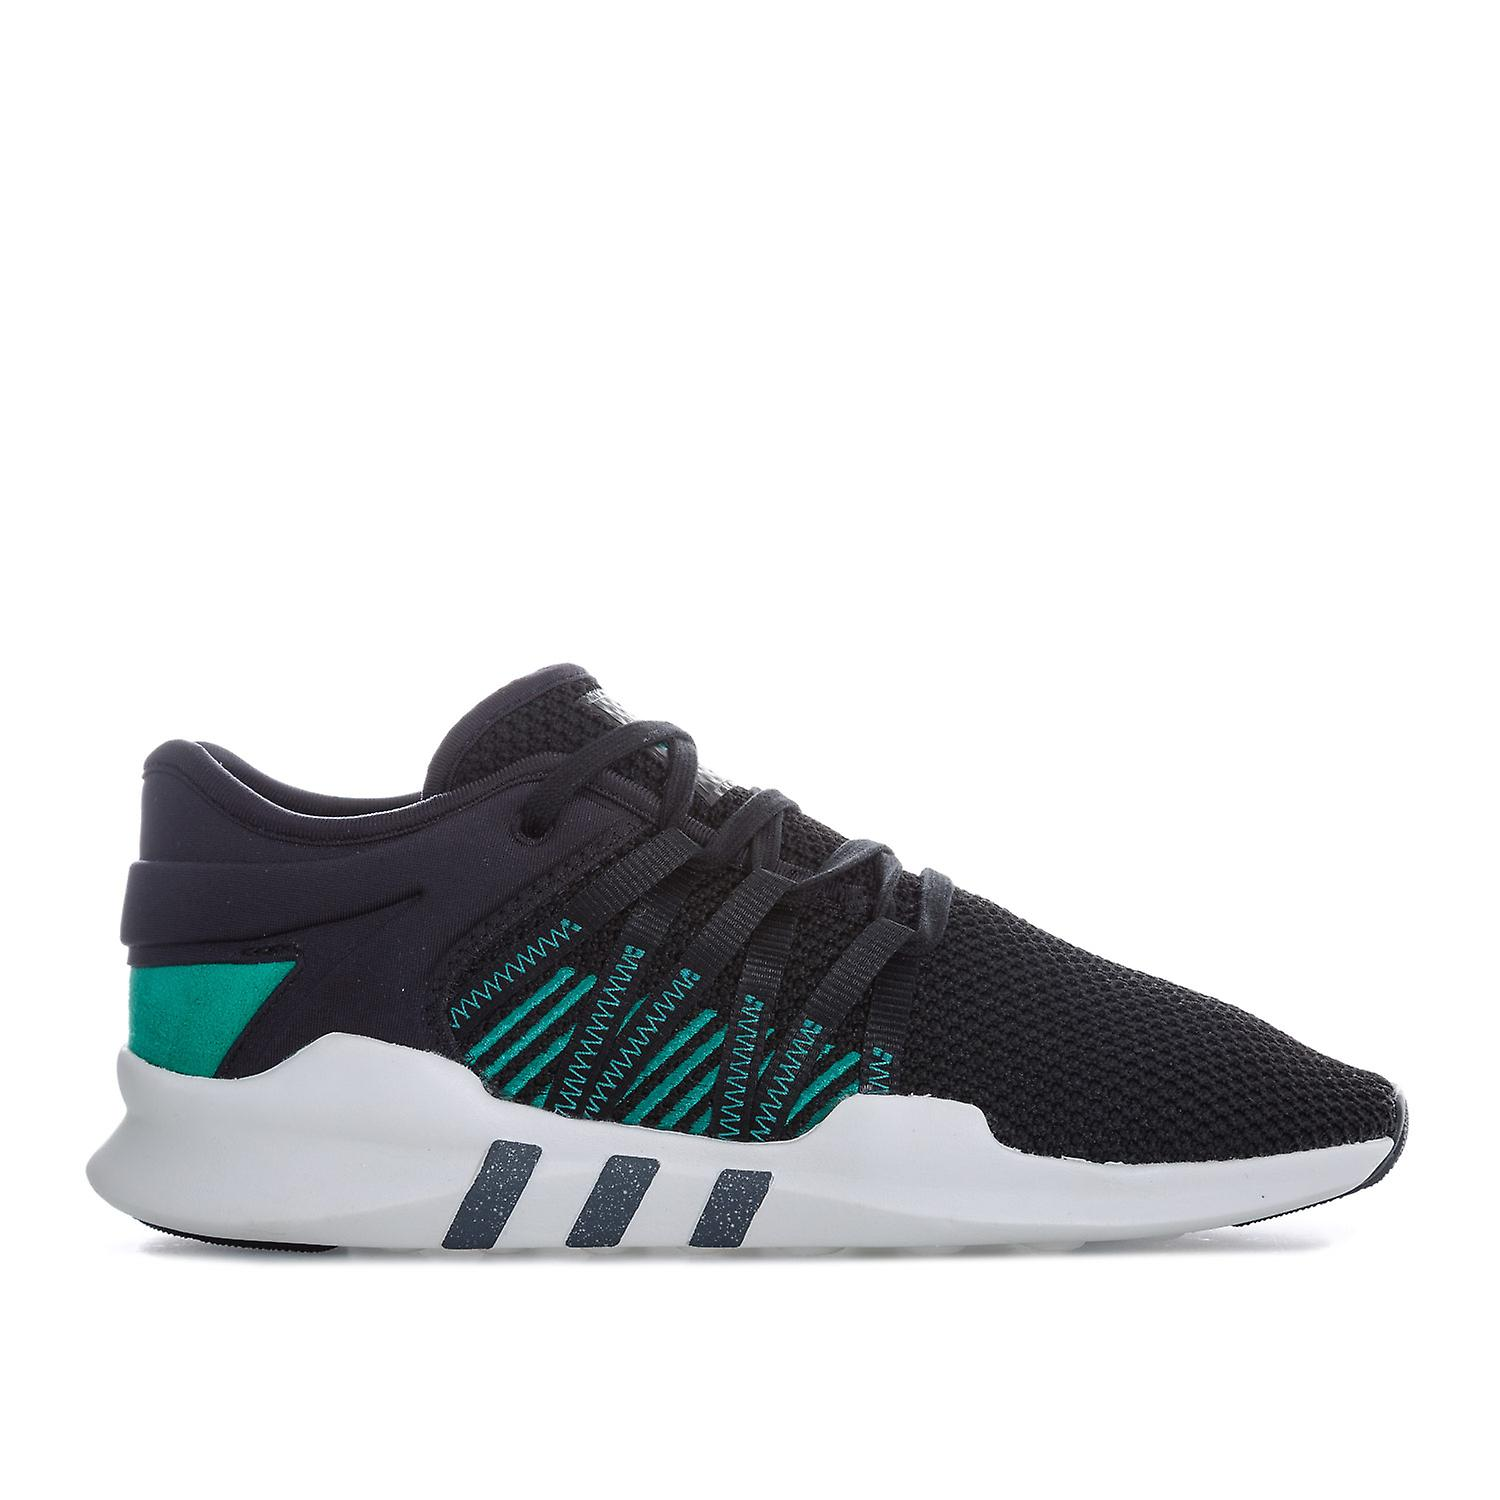 huge selection of 6698b 31611 Womens adidas Originals Eqt Racing Adv Trainers In Core Black, Sub Green